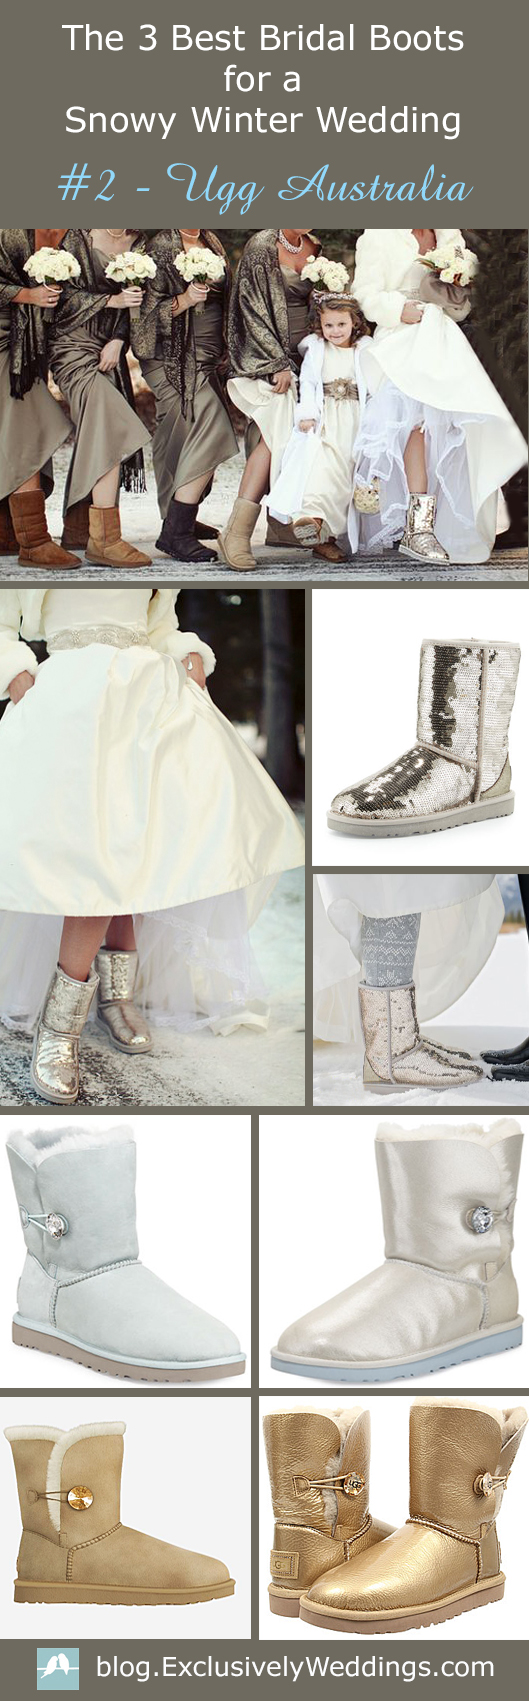 The_3_Best_Bridal_Boots_for_a_Snowy_Winter_Wedding_-_Ugg Boots